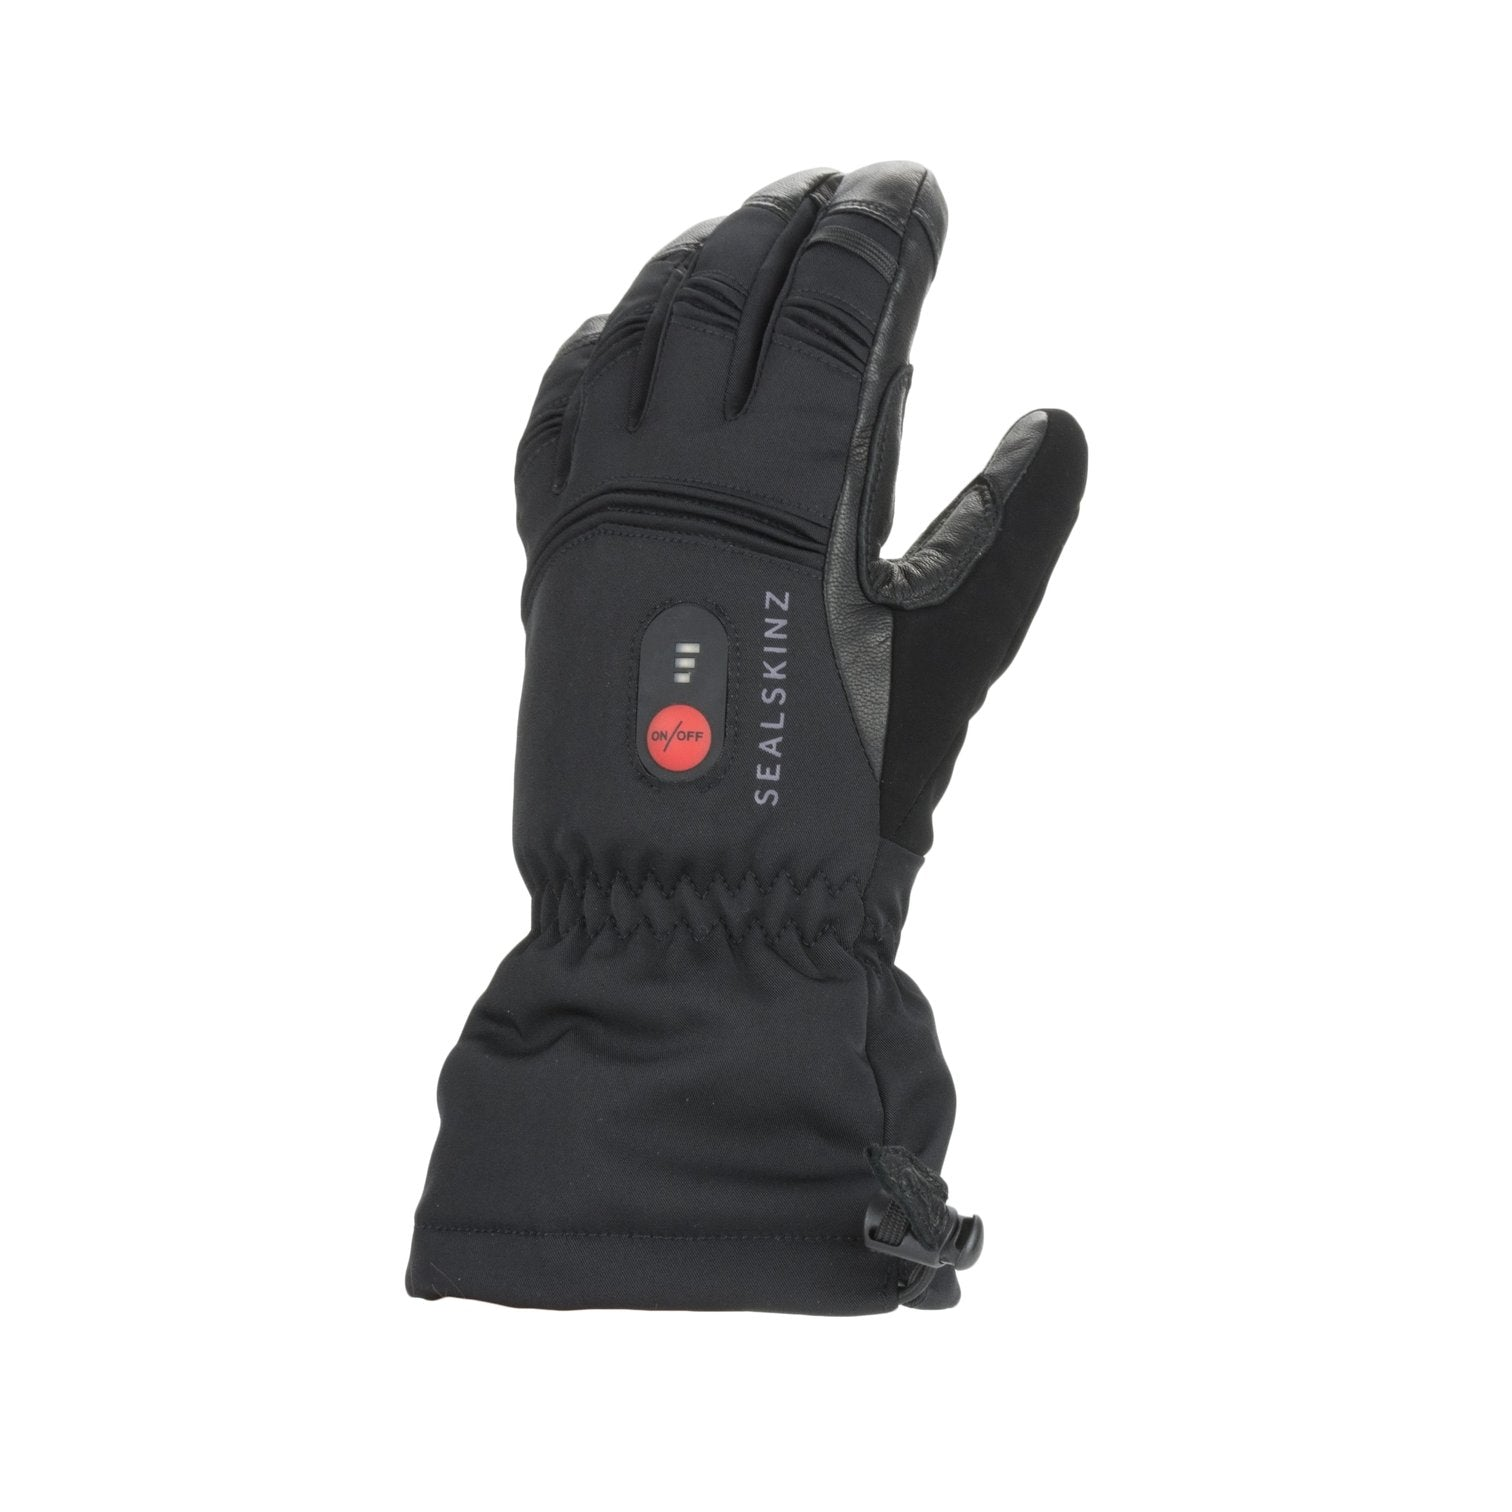 waterproof-heated-gauntlet